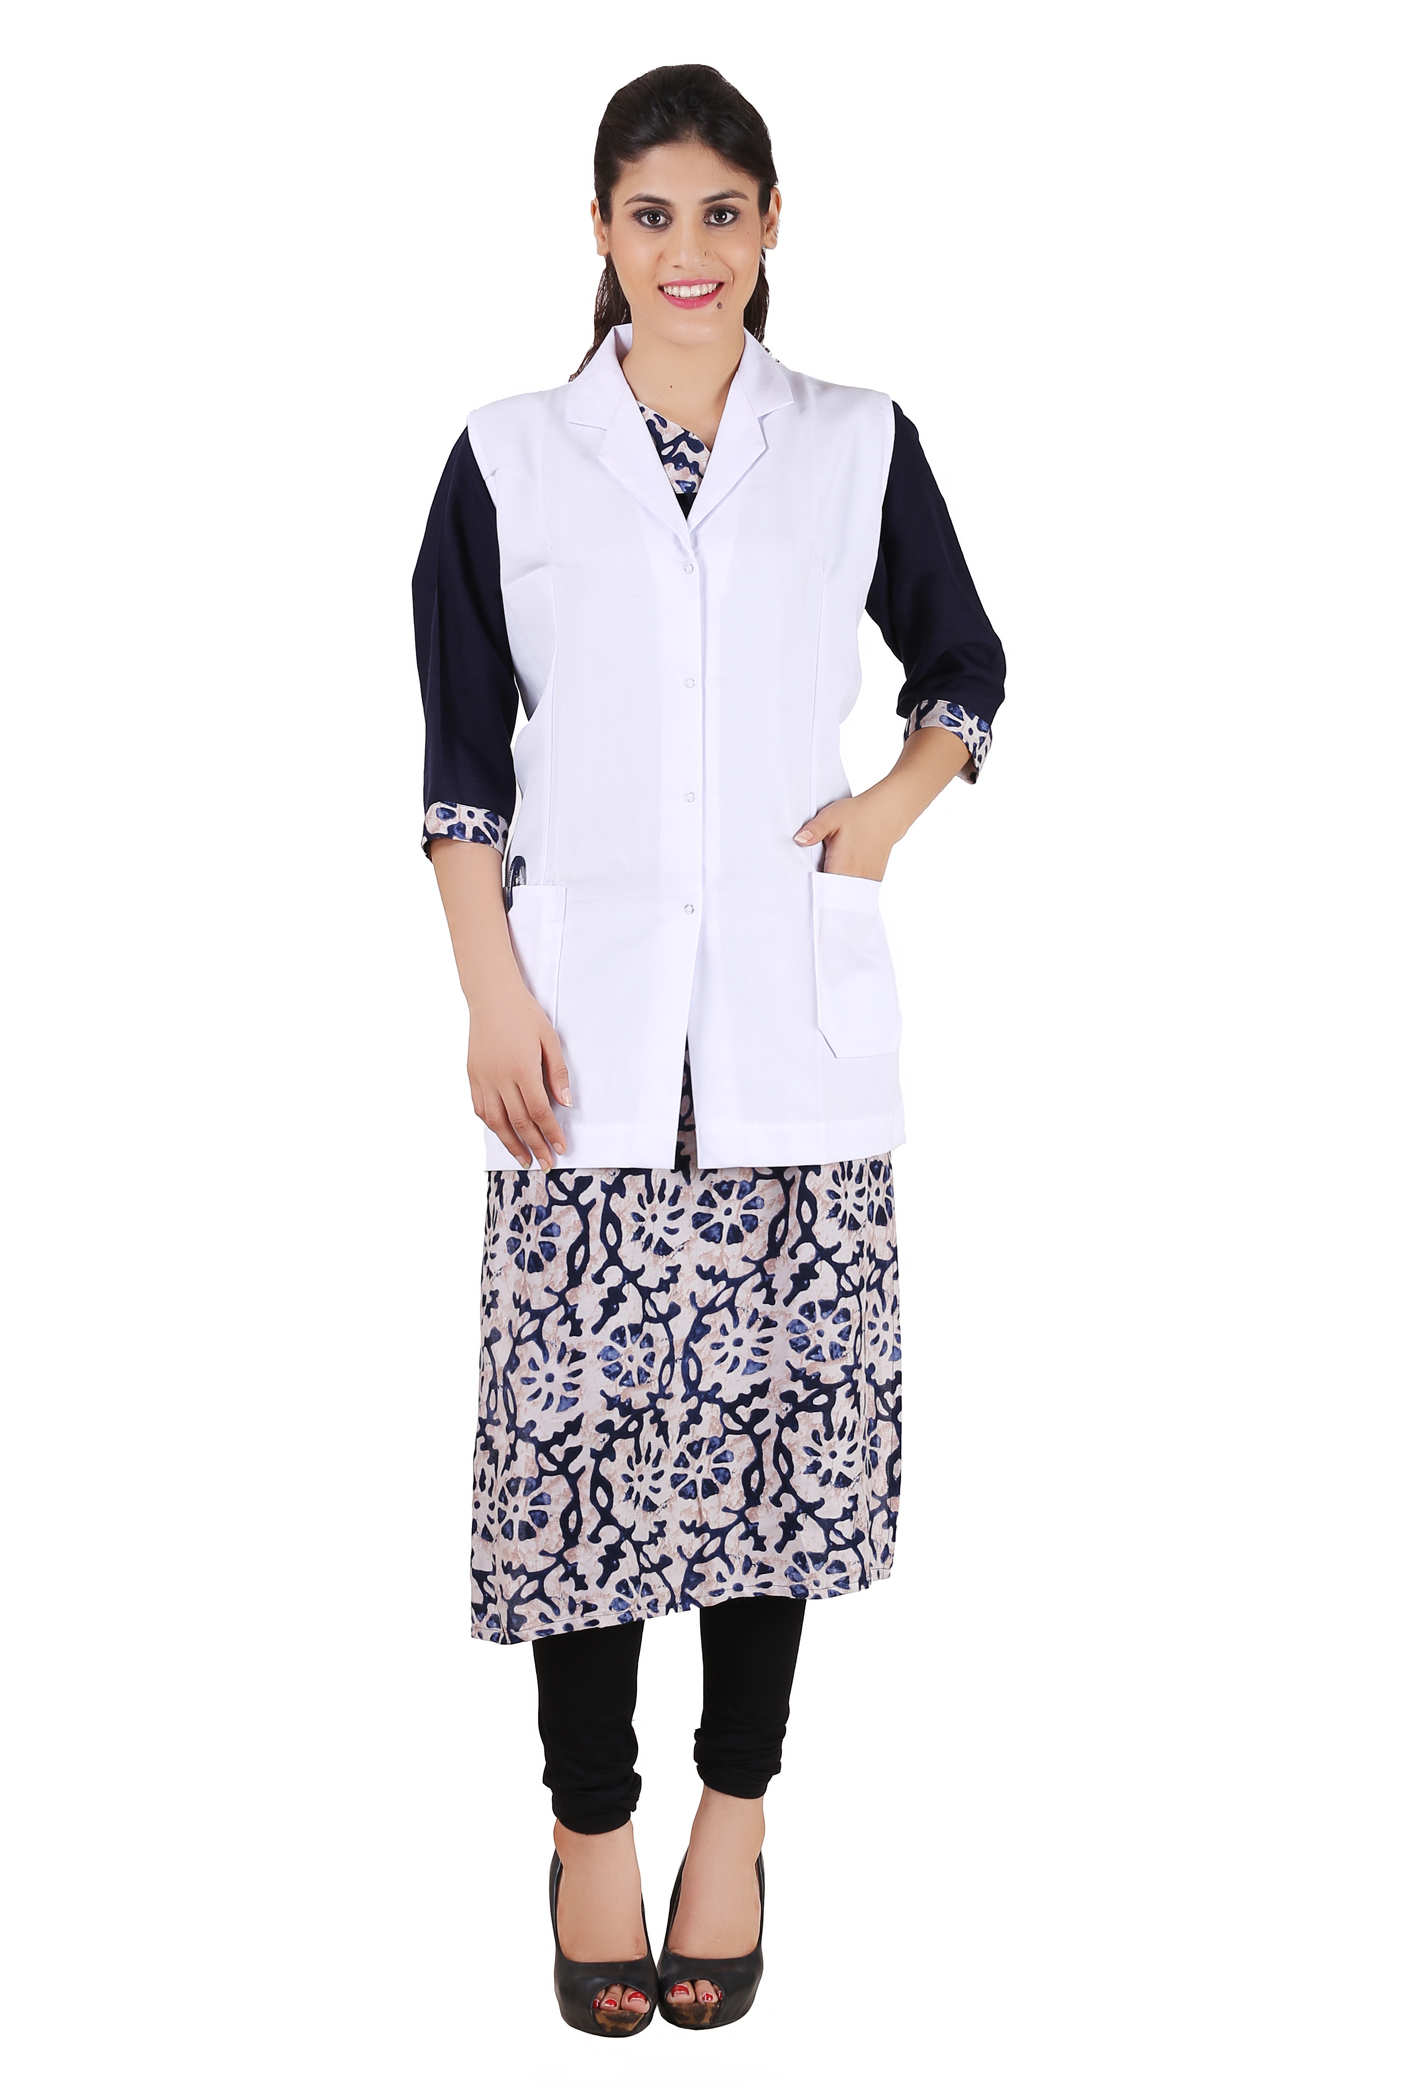 New Styles, Low cost and quality fabric Medical/ Hospital uniform available Online in India